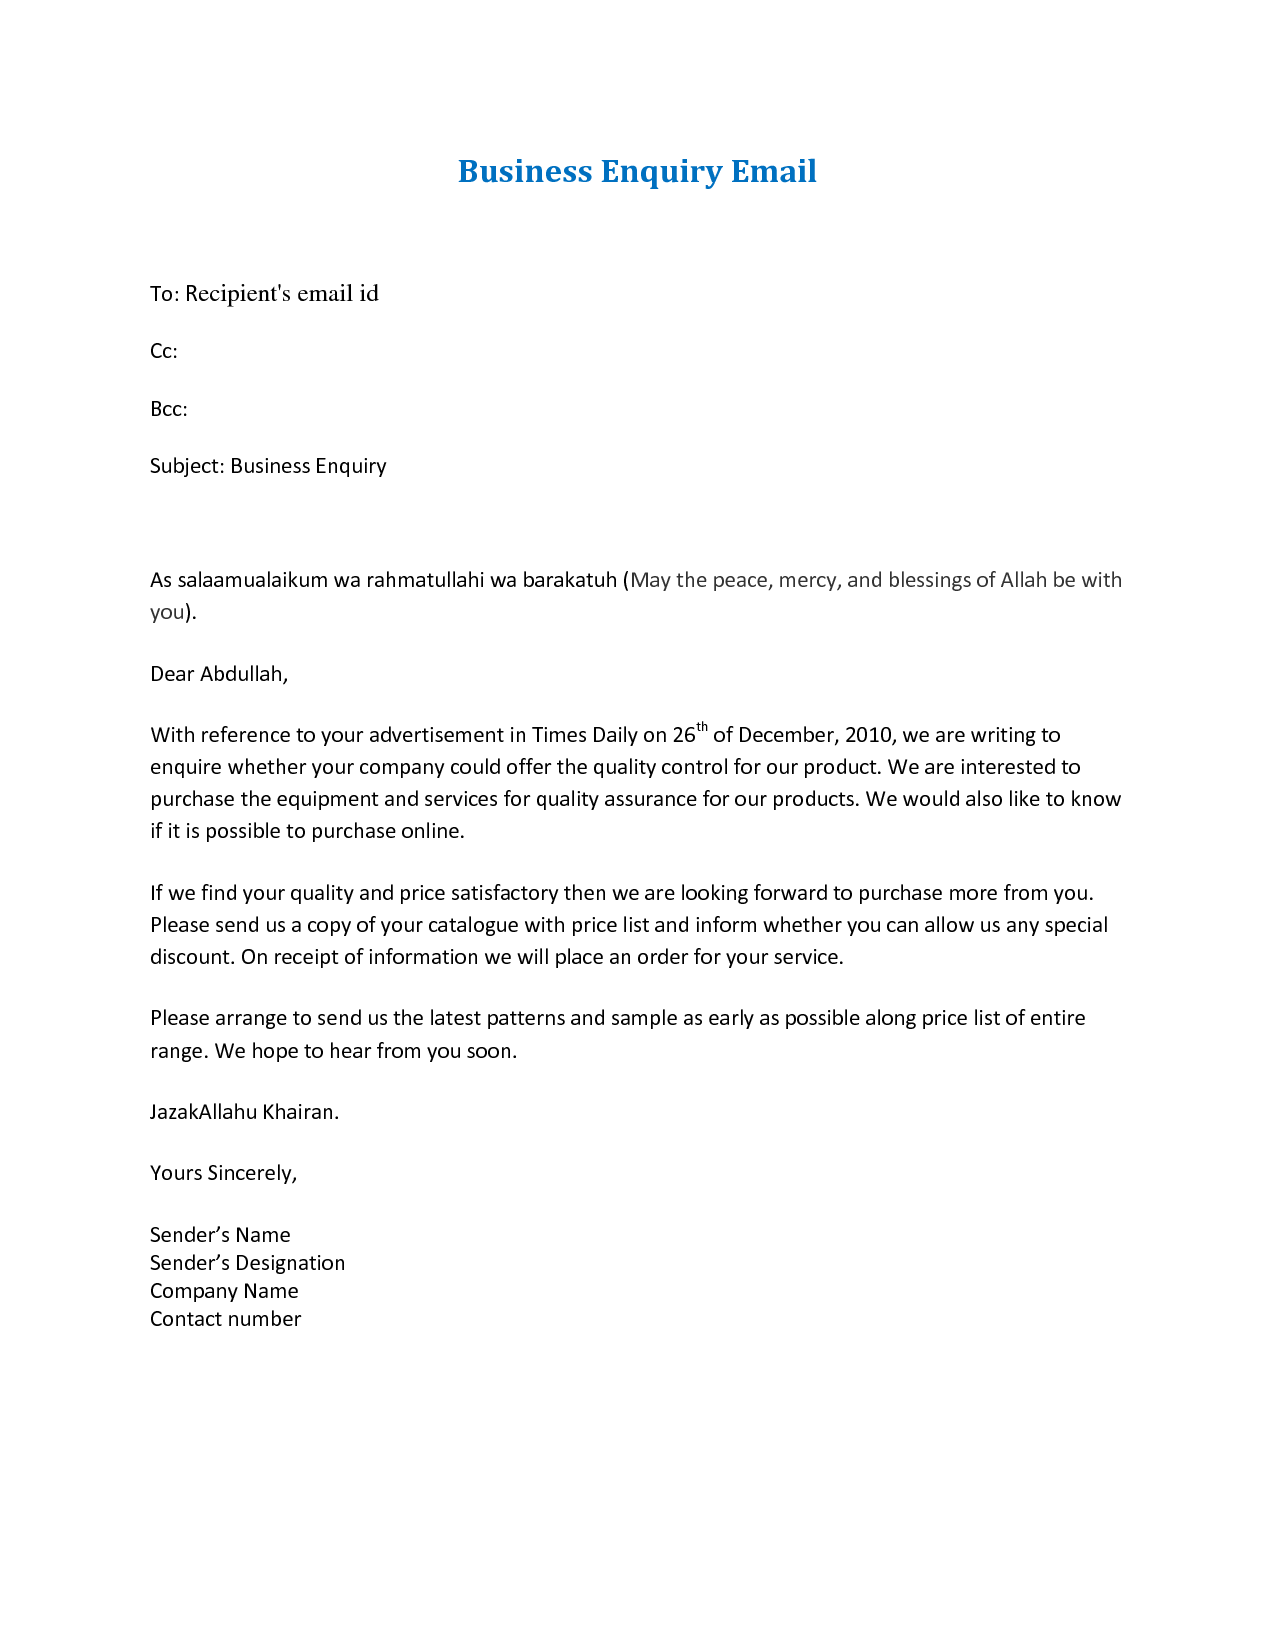 Business Letter Email Format   Design Templates